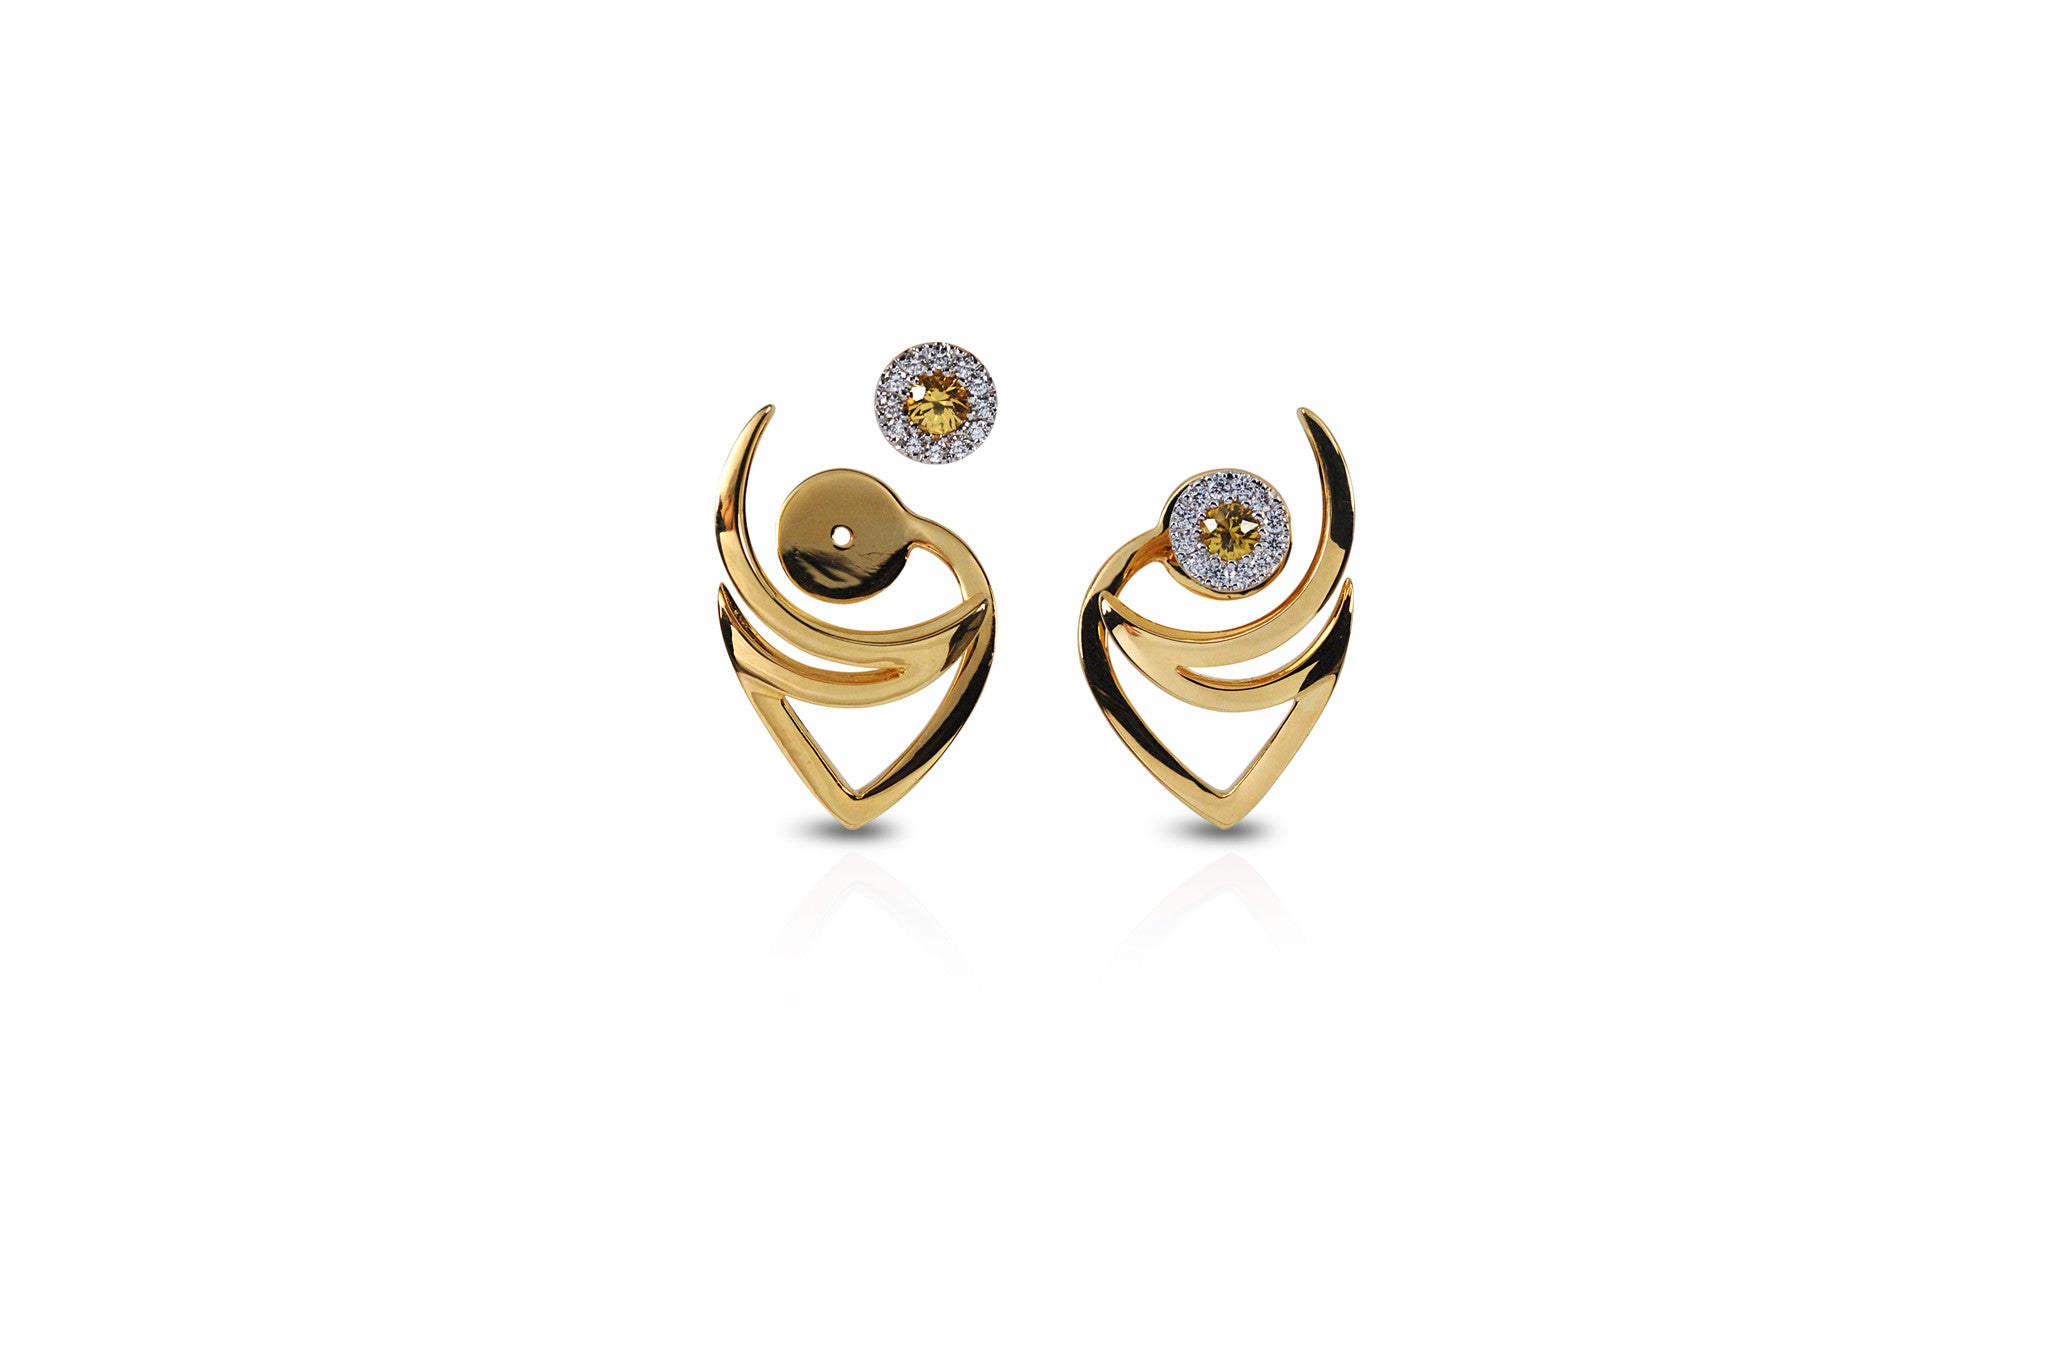 s y sapphire rd earrings wrc yellow ct gold ebay stud round itm